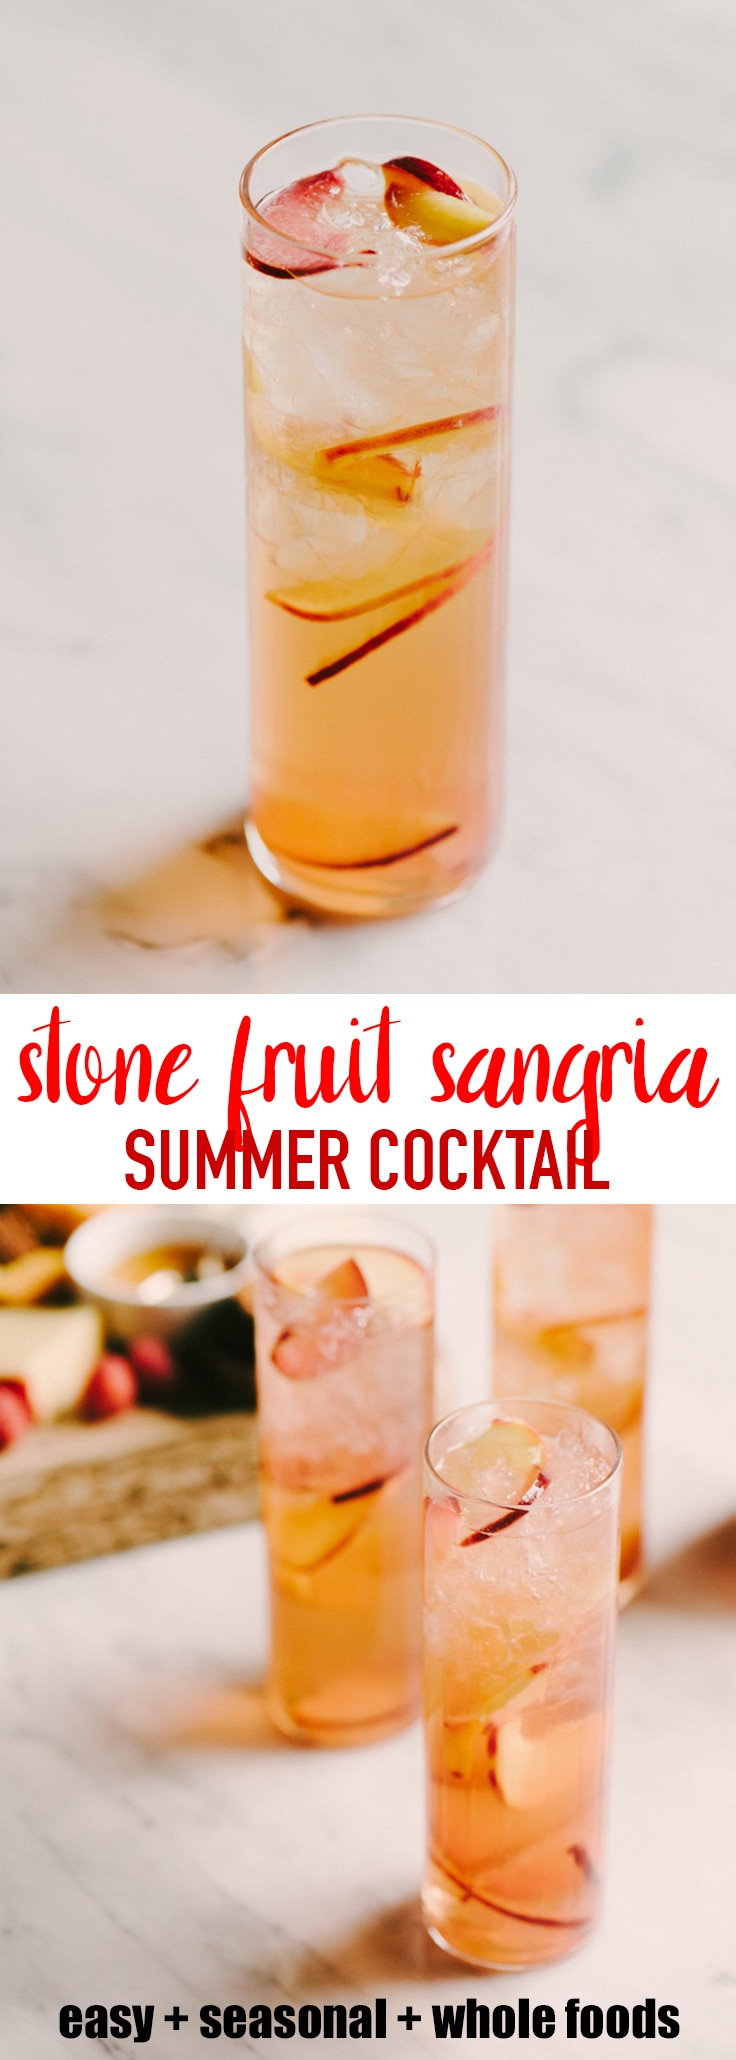 This stone fruit sangria is refreshing, just sweet enough, and perfect for entertaining on a small or large scale. I like to serve it with a simple cheese platter for an evening happy hour or weekend afternoon gathering with great friends and good times. #sangria #cocktail #summer #stonefruit